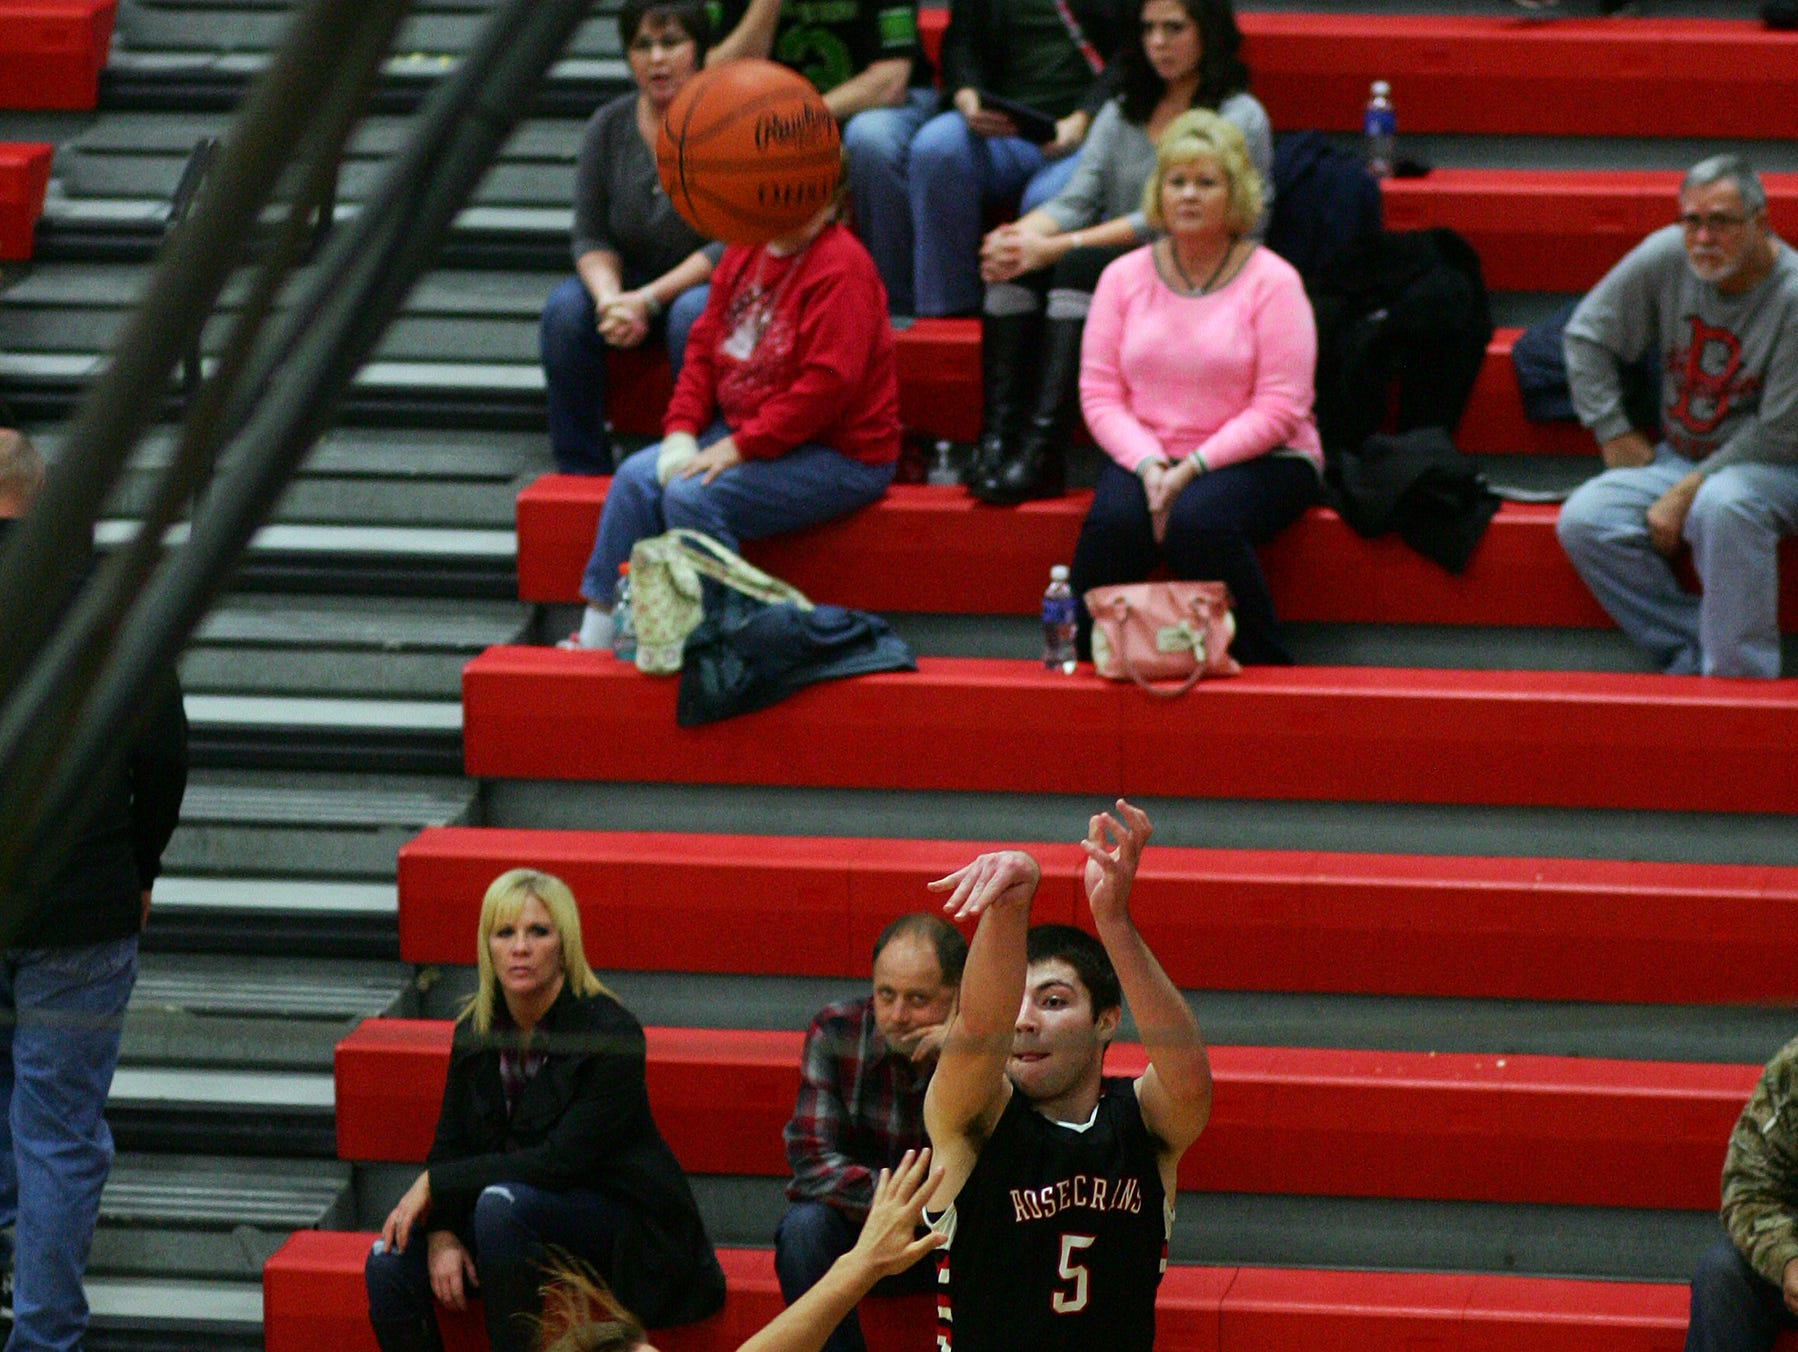 Bishop Rosecrans junior Michael Fisher shoots for three Friday during the teams' 69-68 victory over Coshocton in overtime. Fisher made 10 three point baskets.